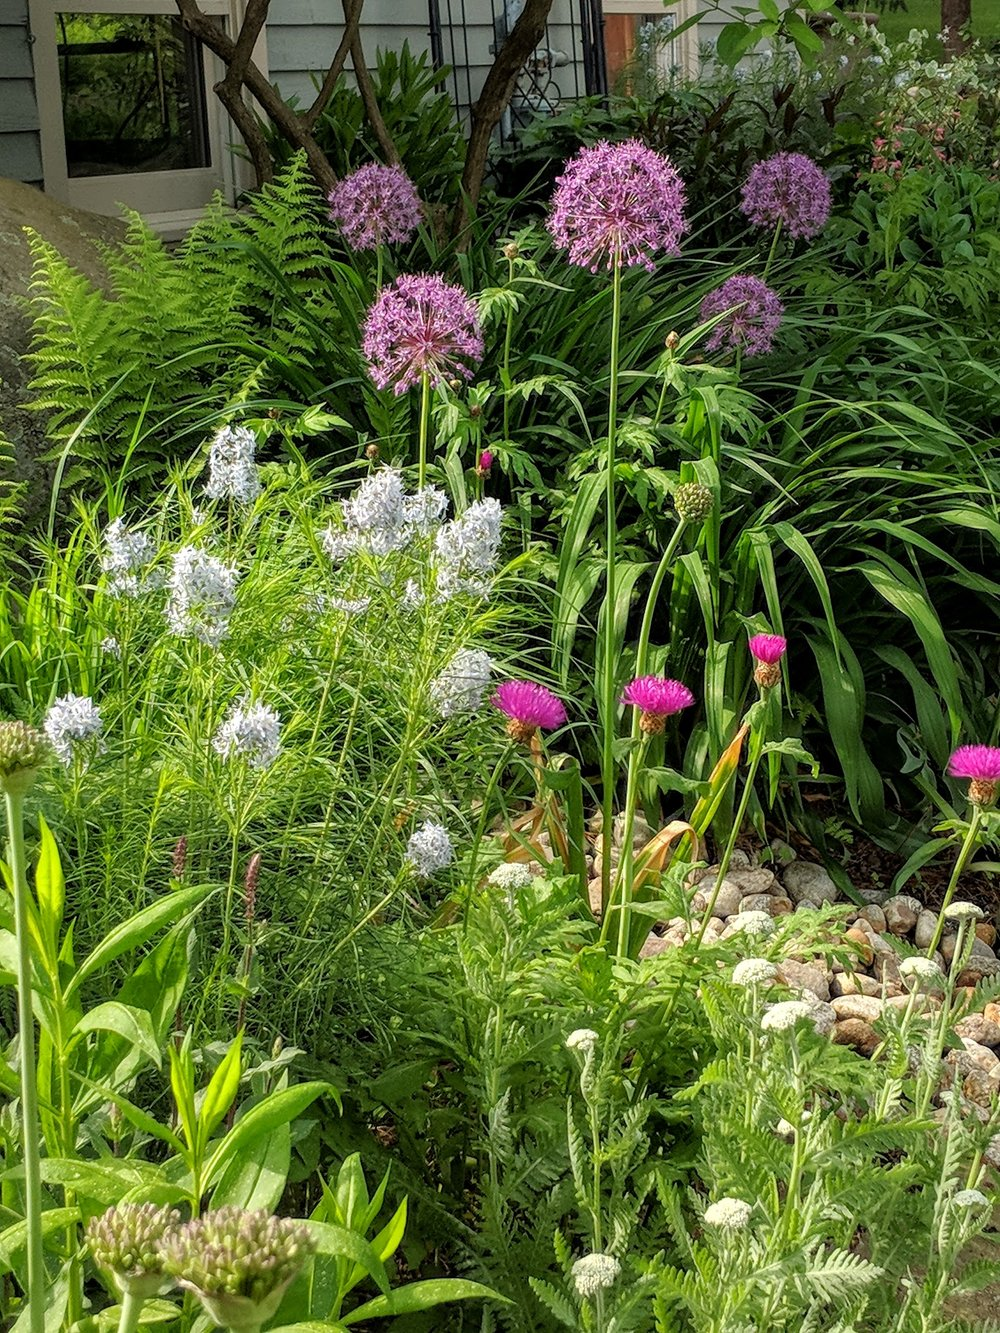 2018-07-02-allium-amsonia.jpg